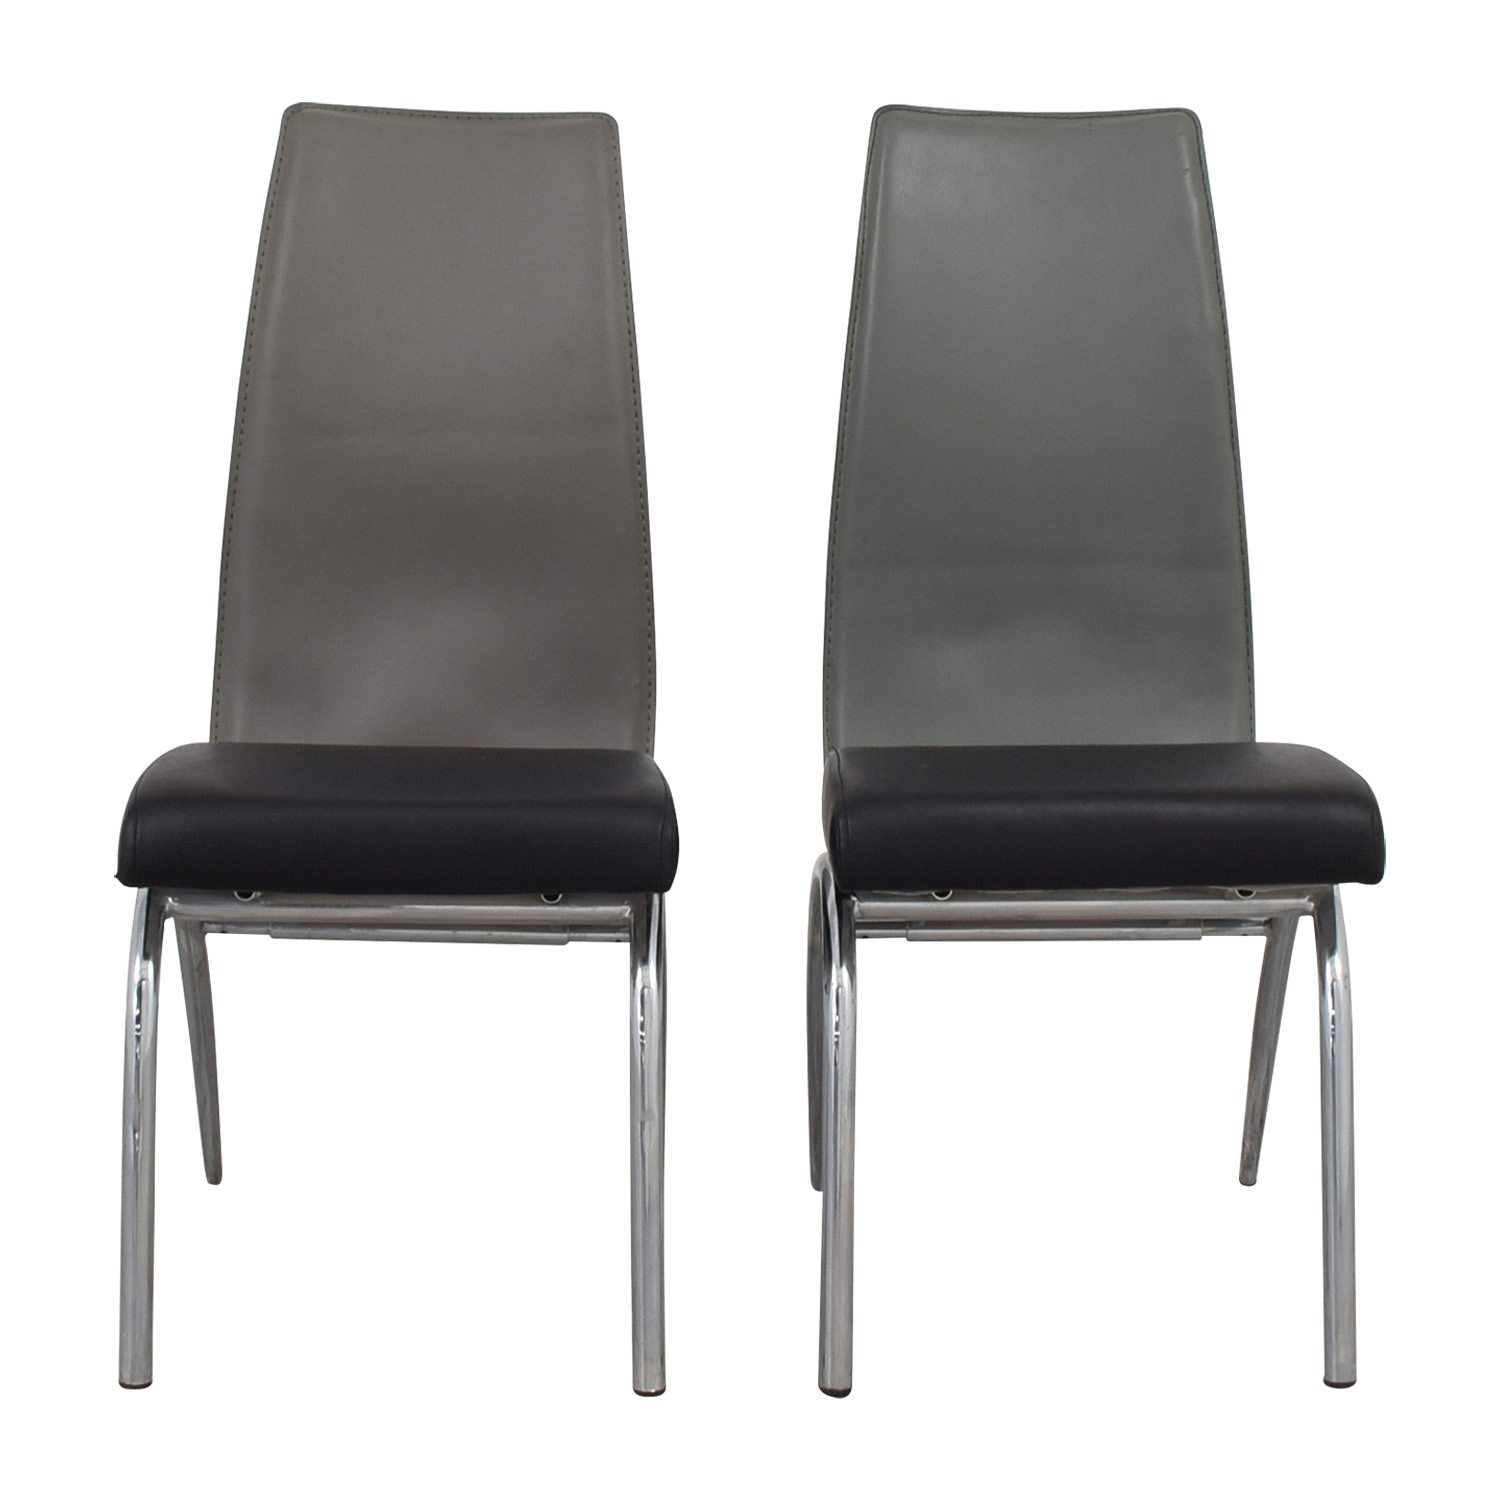 ESF Black and Grey Modern Dining Chair ESF